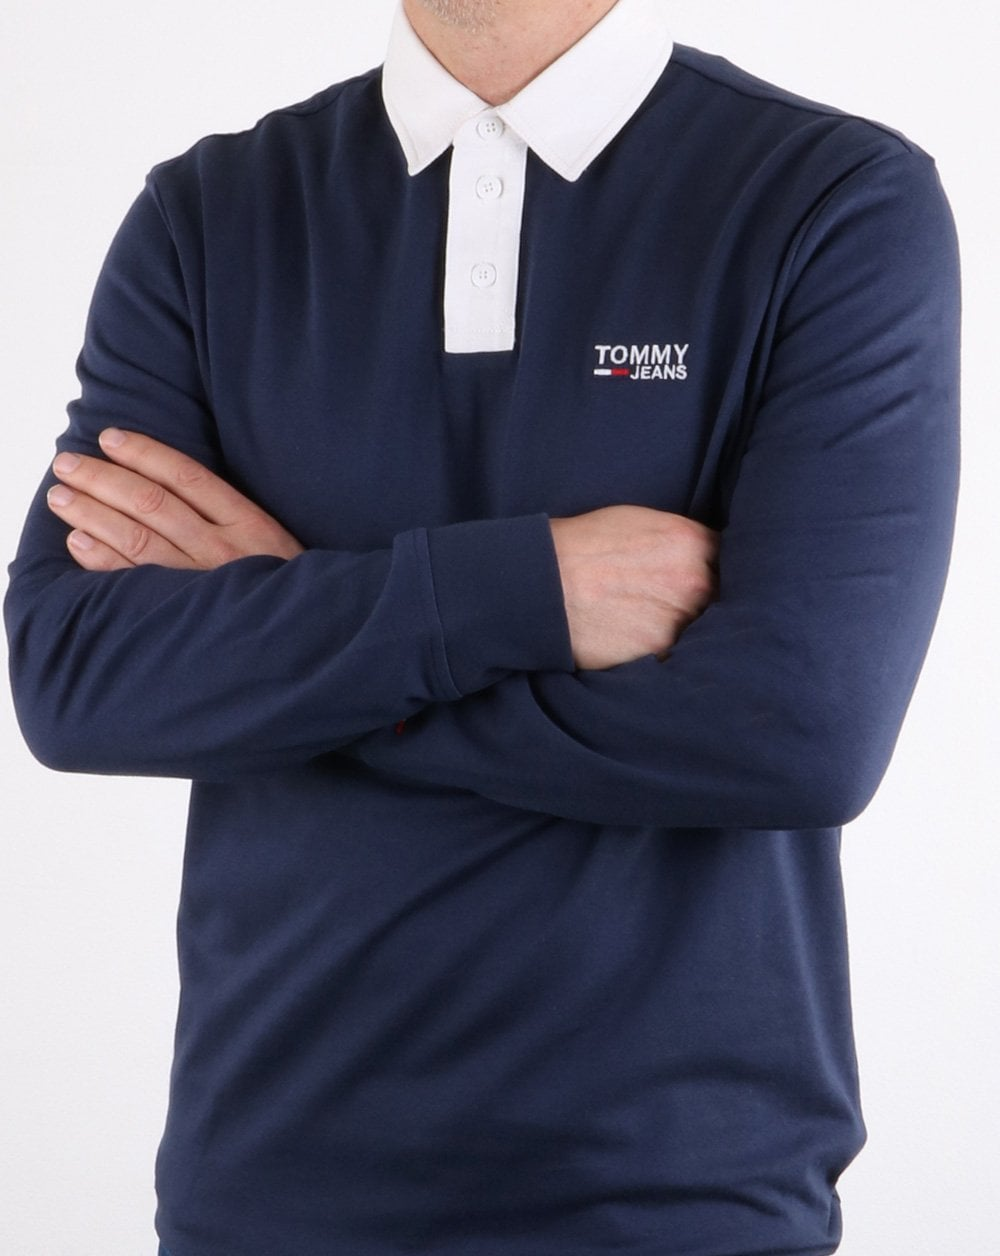 Tommy Hilfiger Jeans Tommy Hilfiger Essential Rugby Shirt in Navy Blue